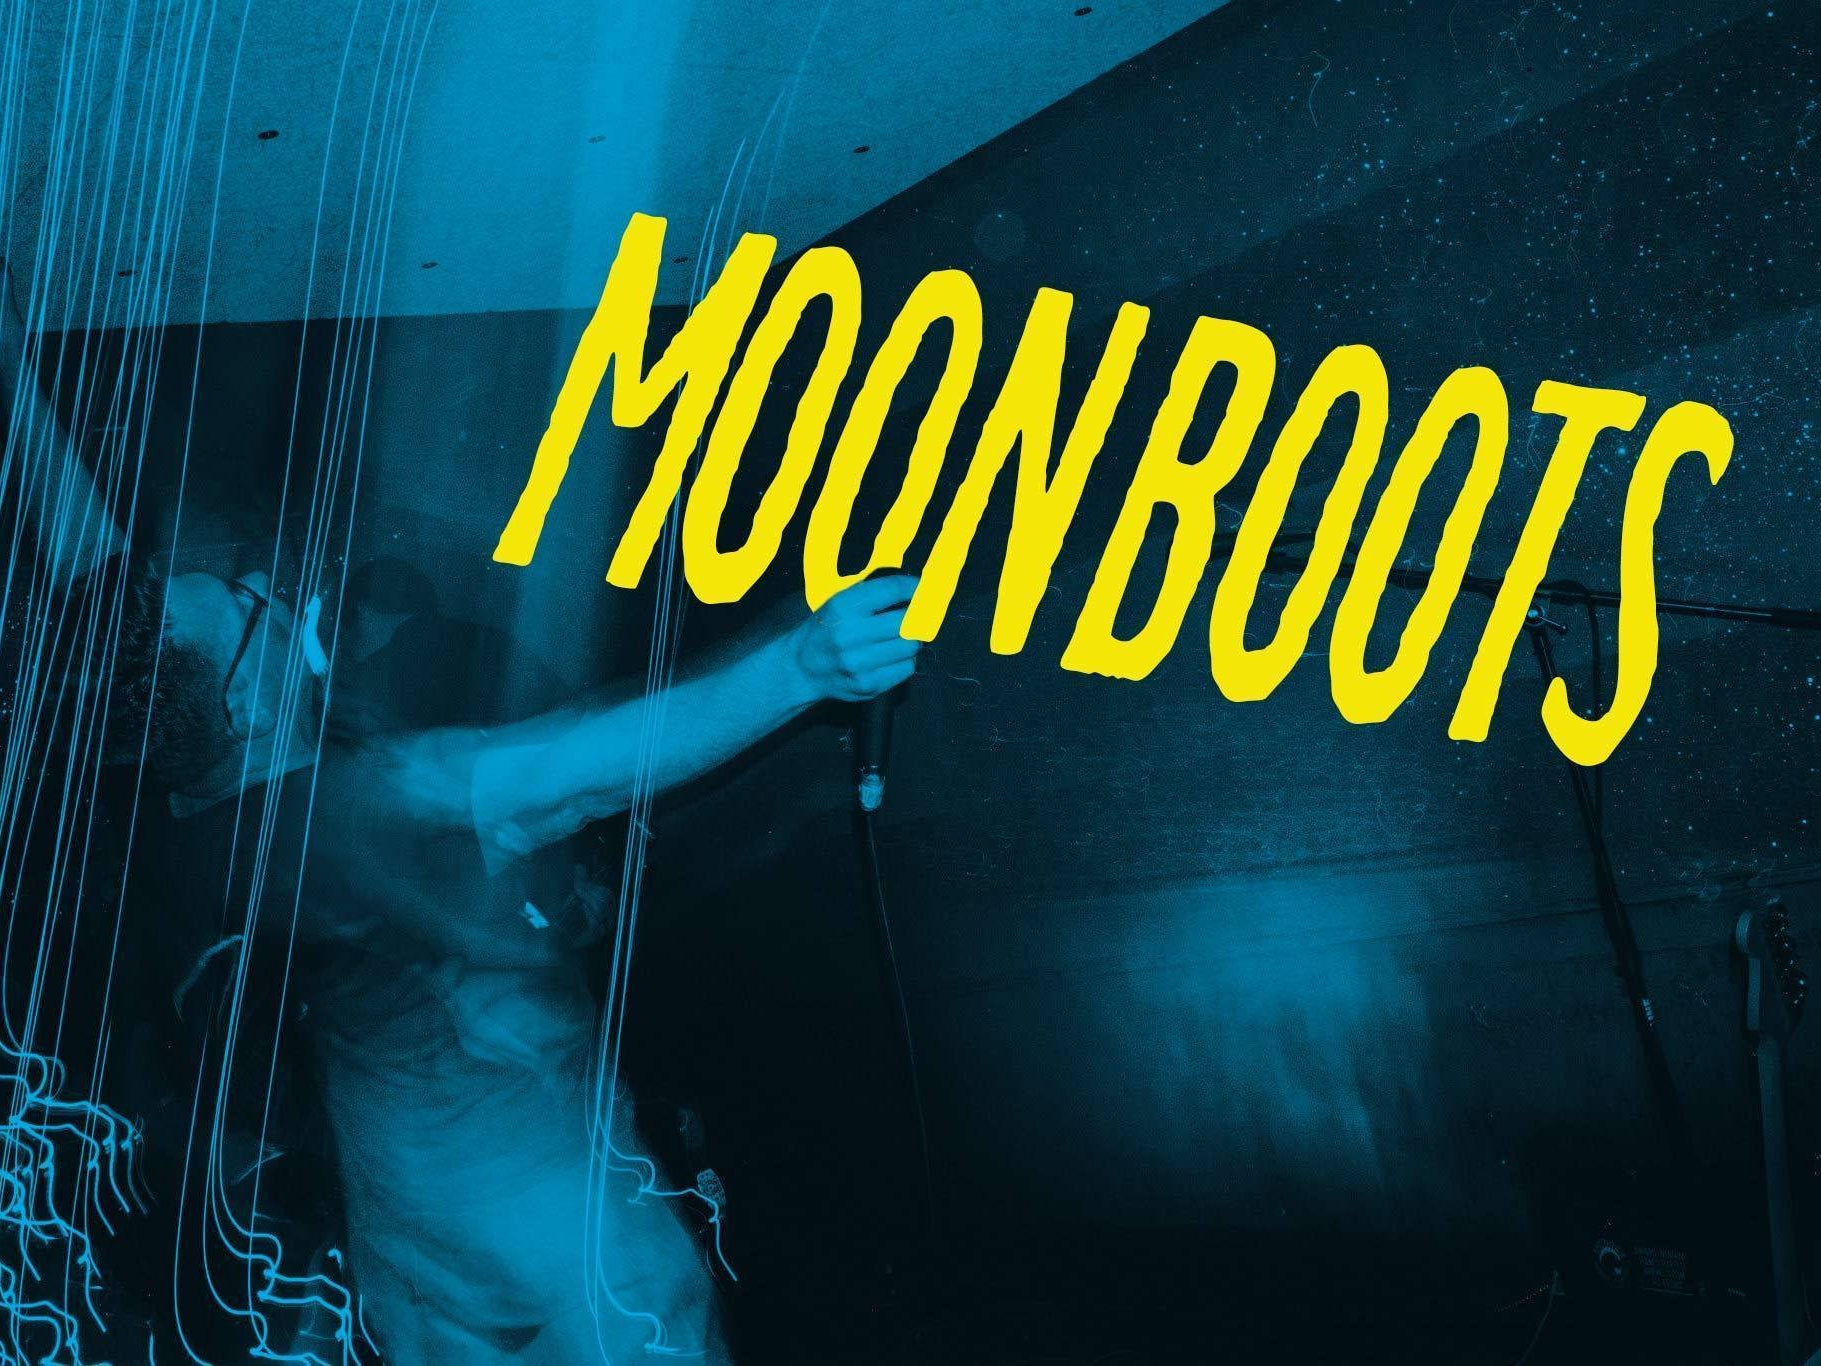 Image for MOONBOOTS (Not the DJ)